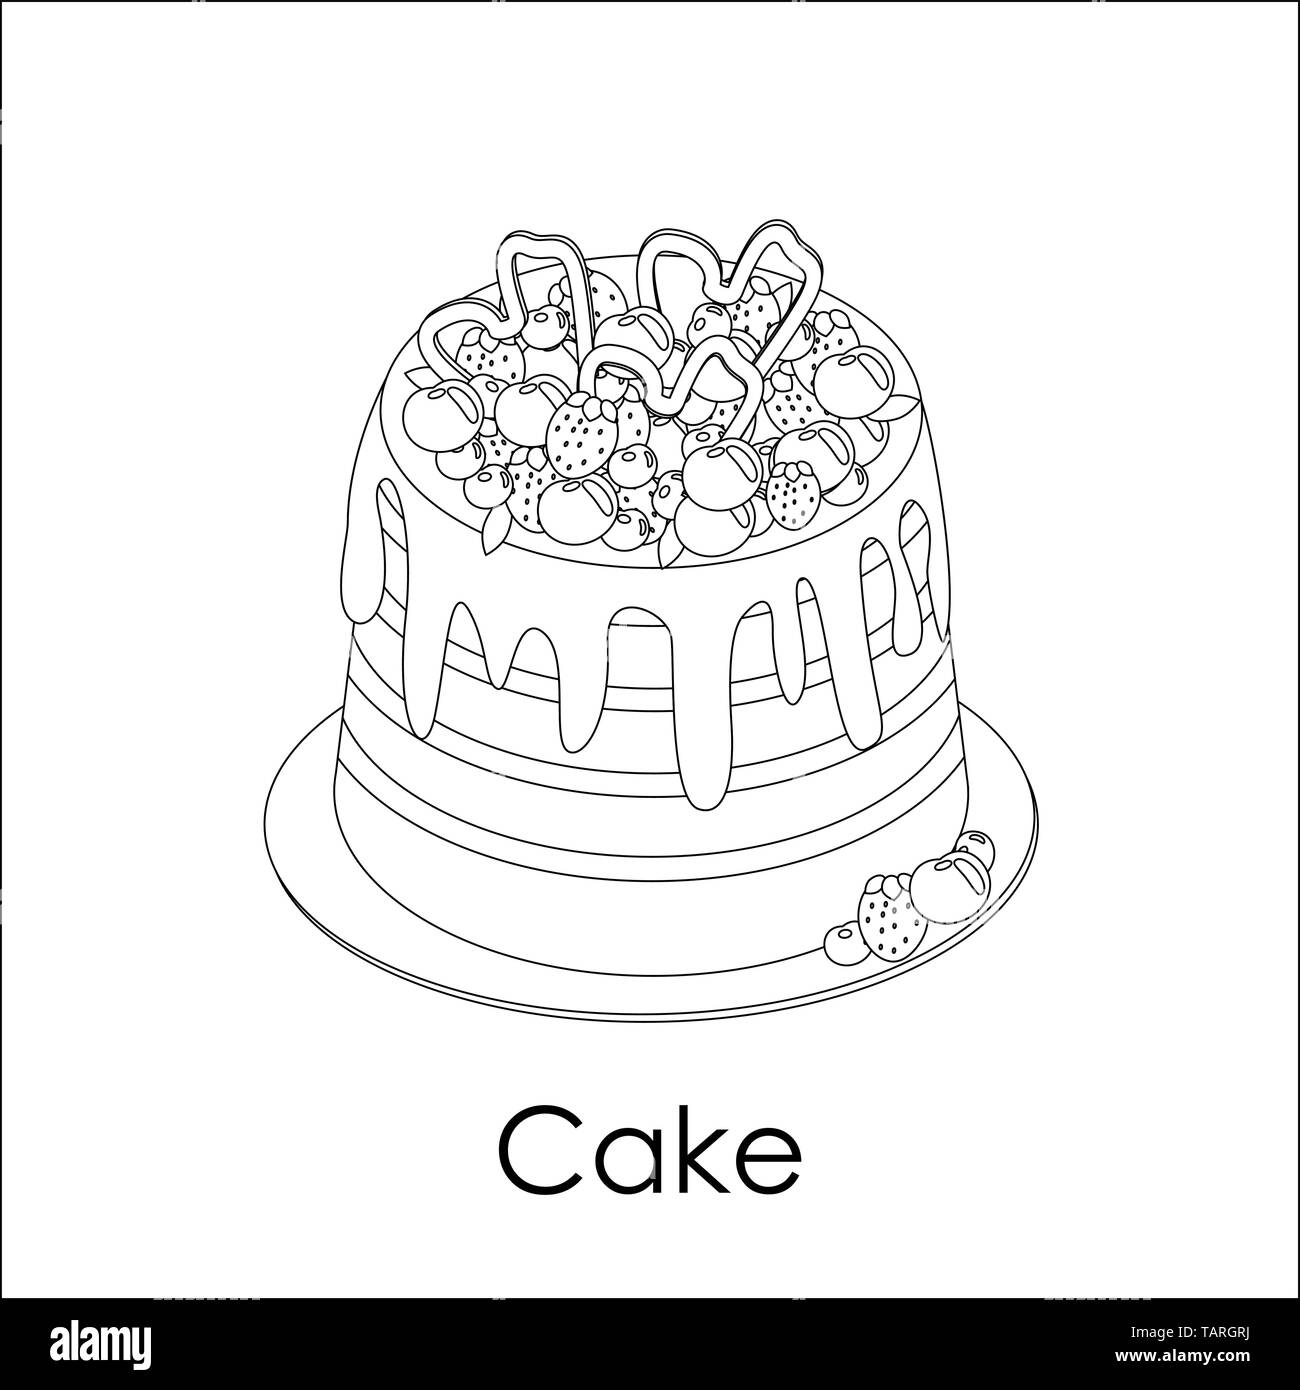 Coloring book page. High striped berry cake in doodle style. Poured on top of chocolate, decorated with assorted strawberries, blueberries, cherries.  - Stock Image